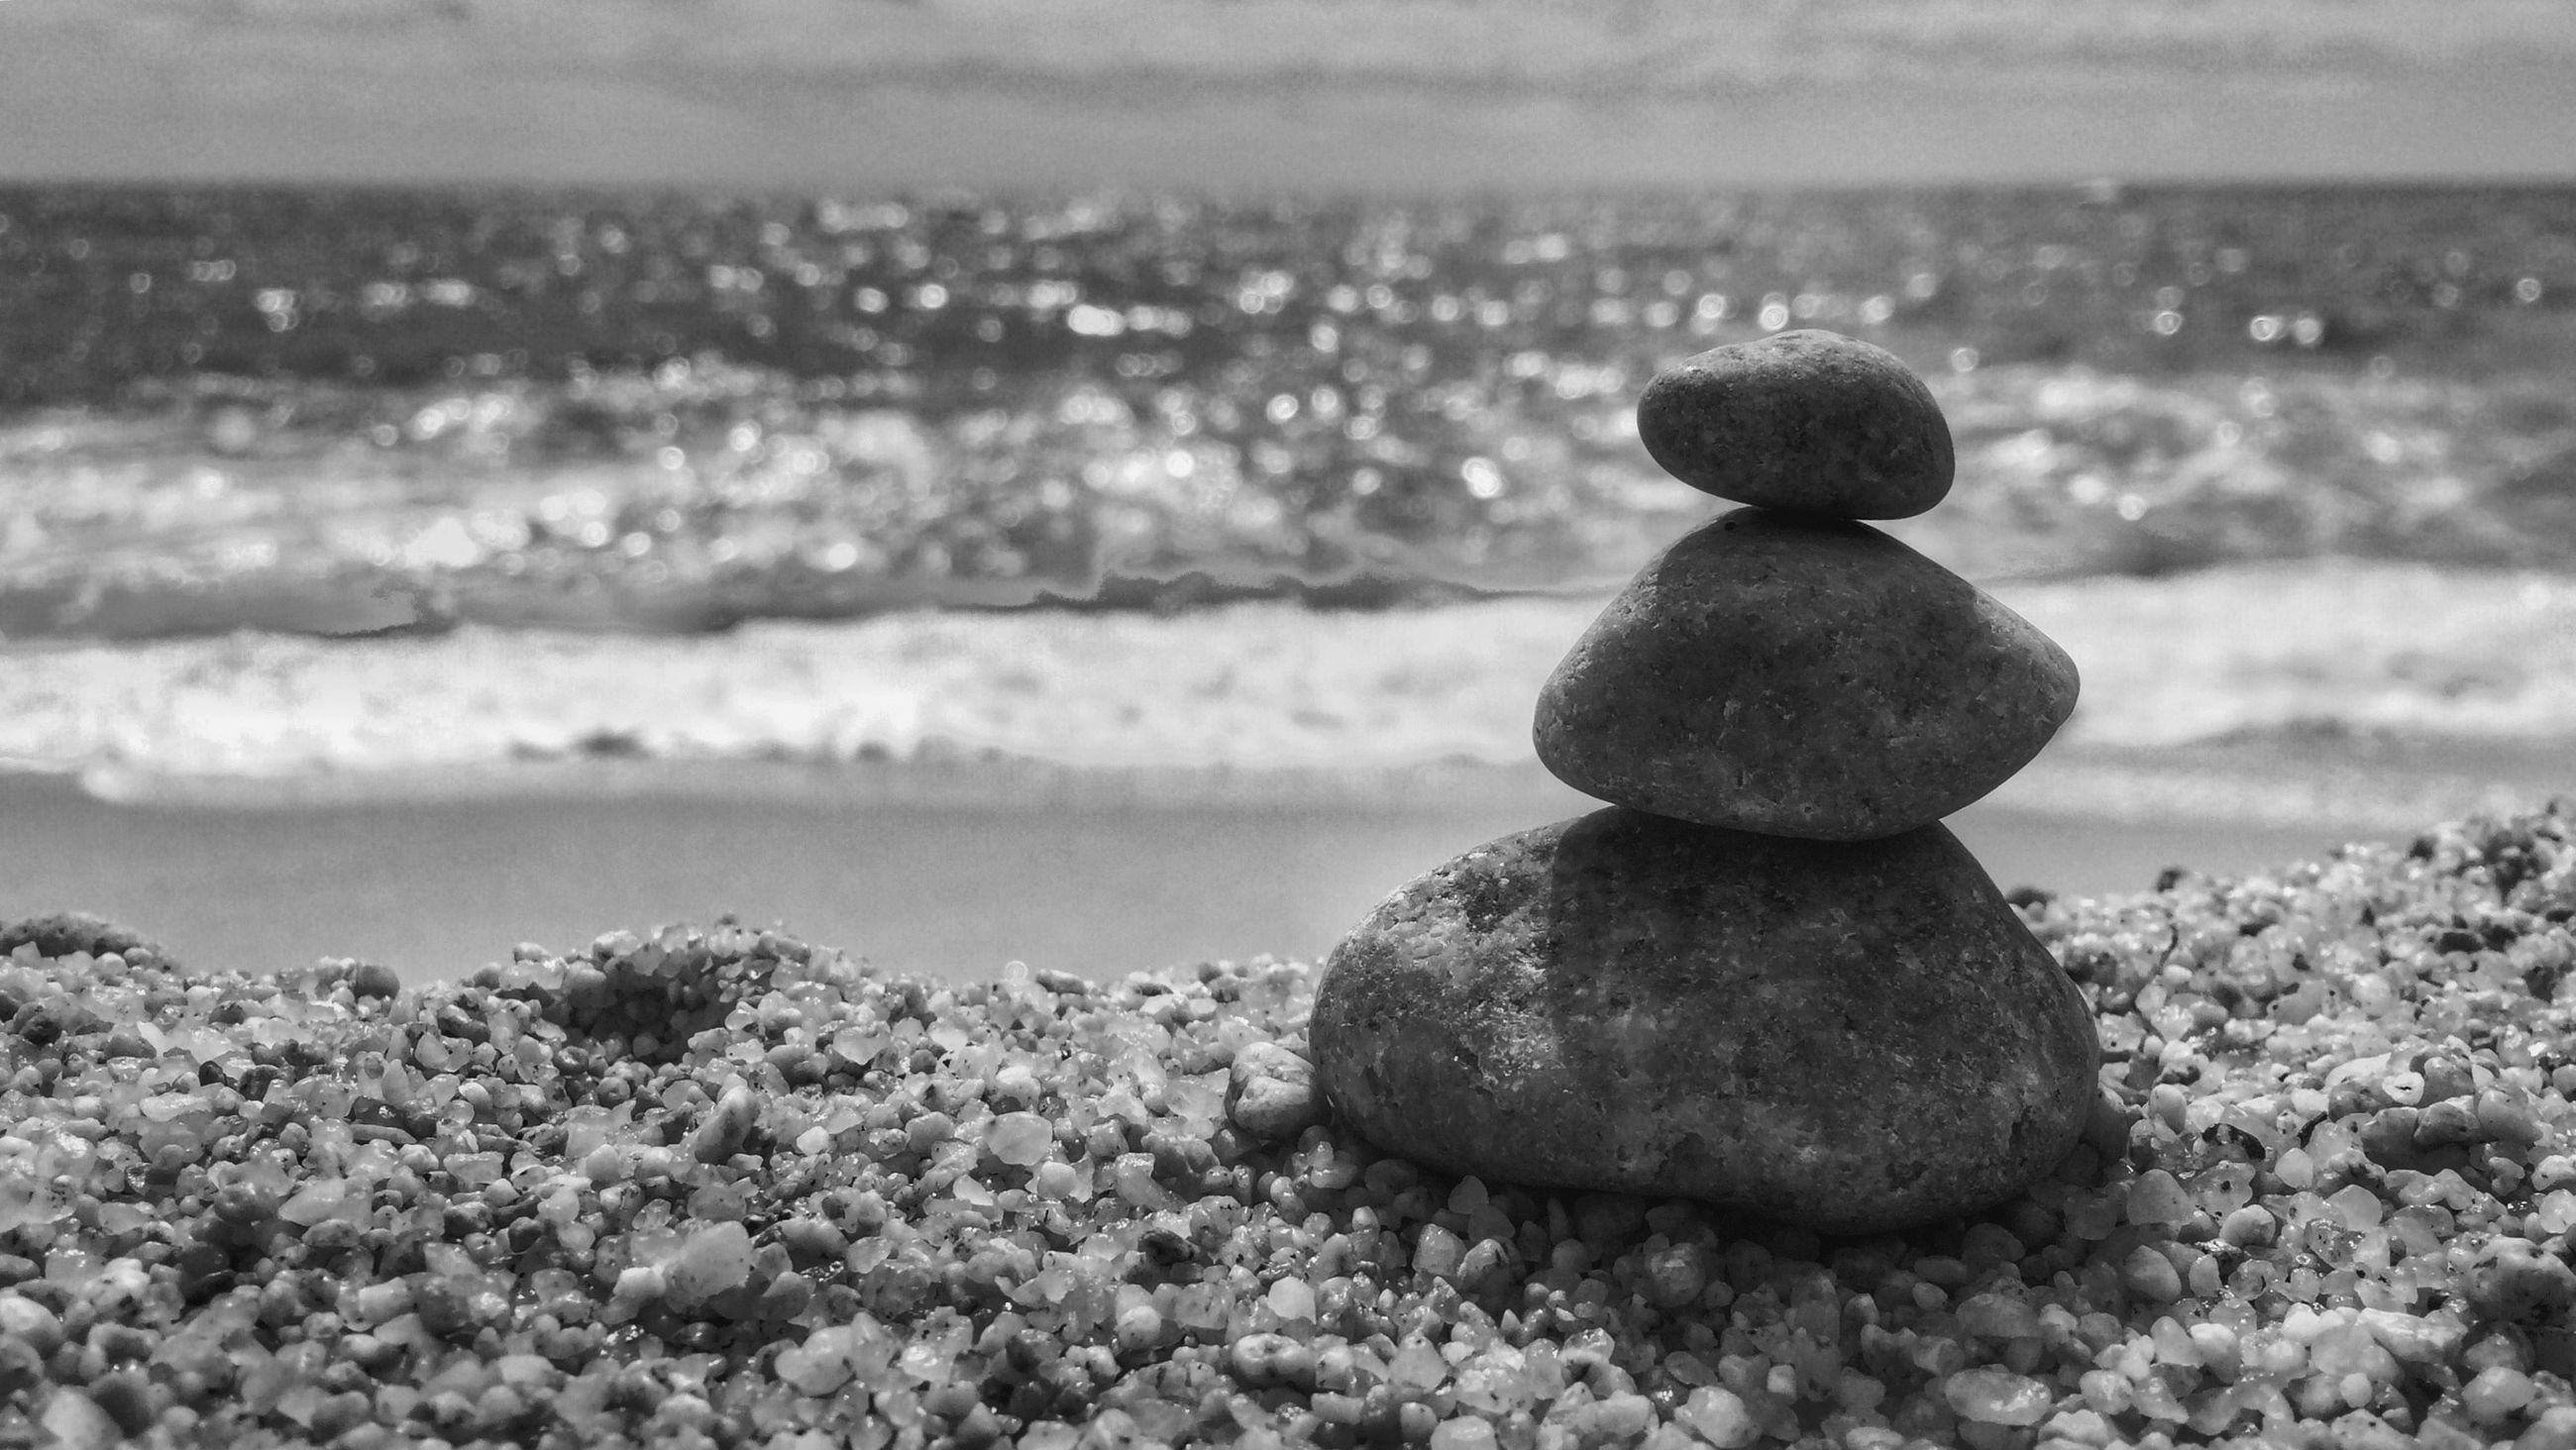 sea, pebble, rock - object, tranquility, beach, tranquil scene, water, stone - object, nature, focus on foreground, horizon over water, shore, beauty in nature, sky, scenics, stone, close-up, rock, stack, day